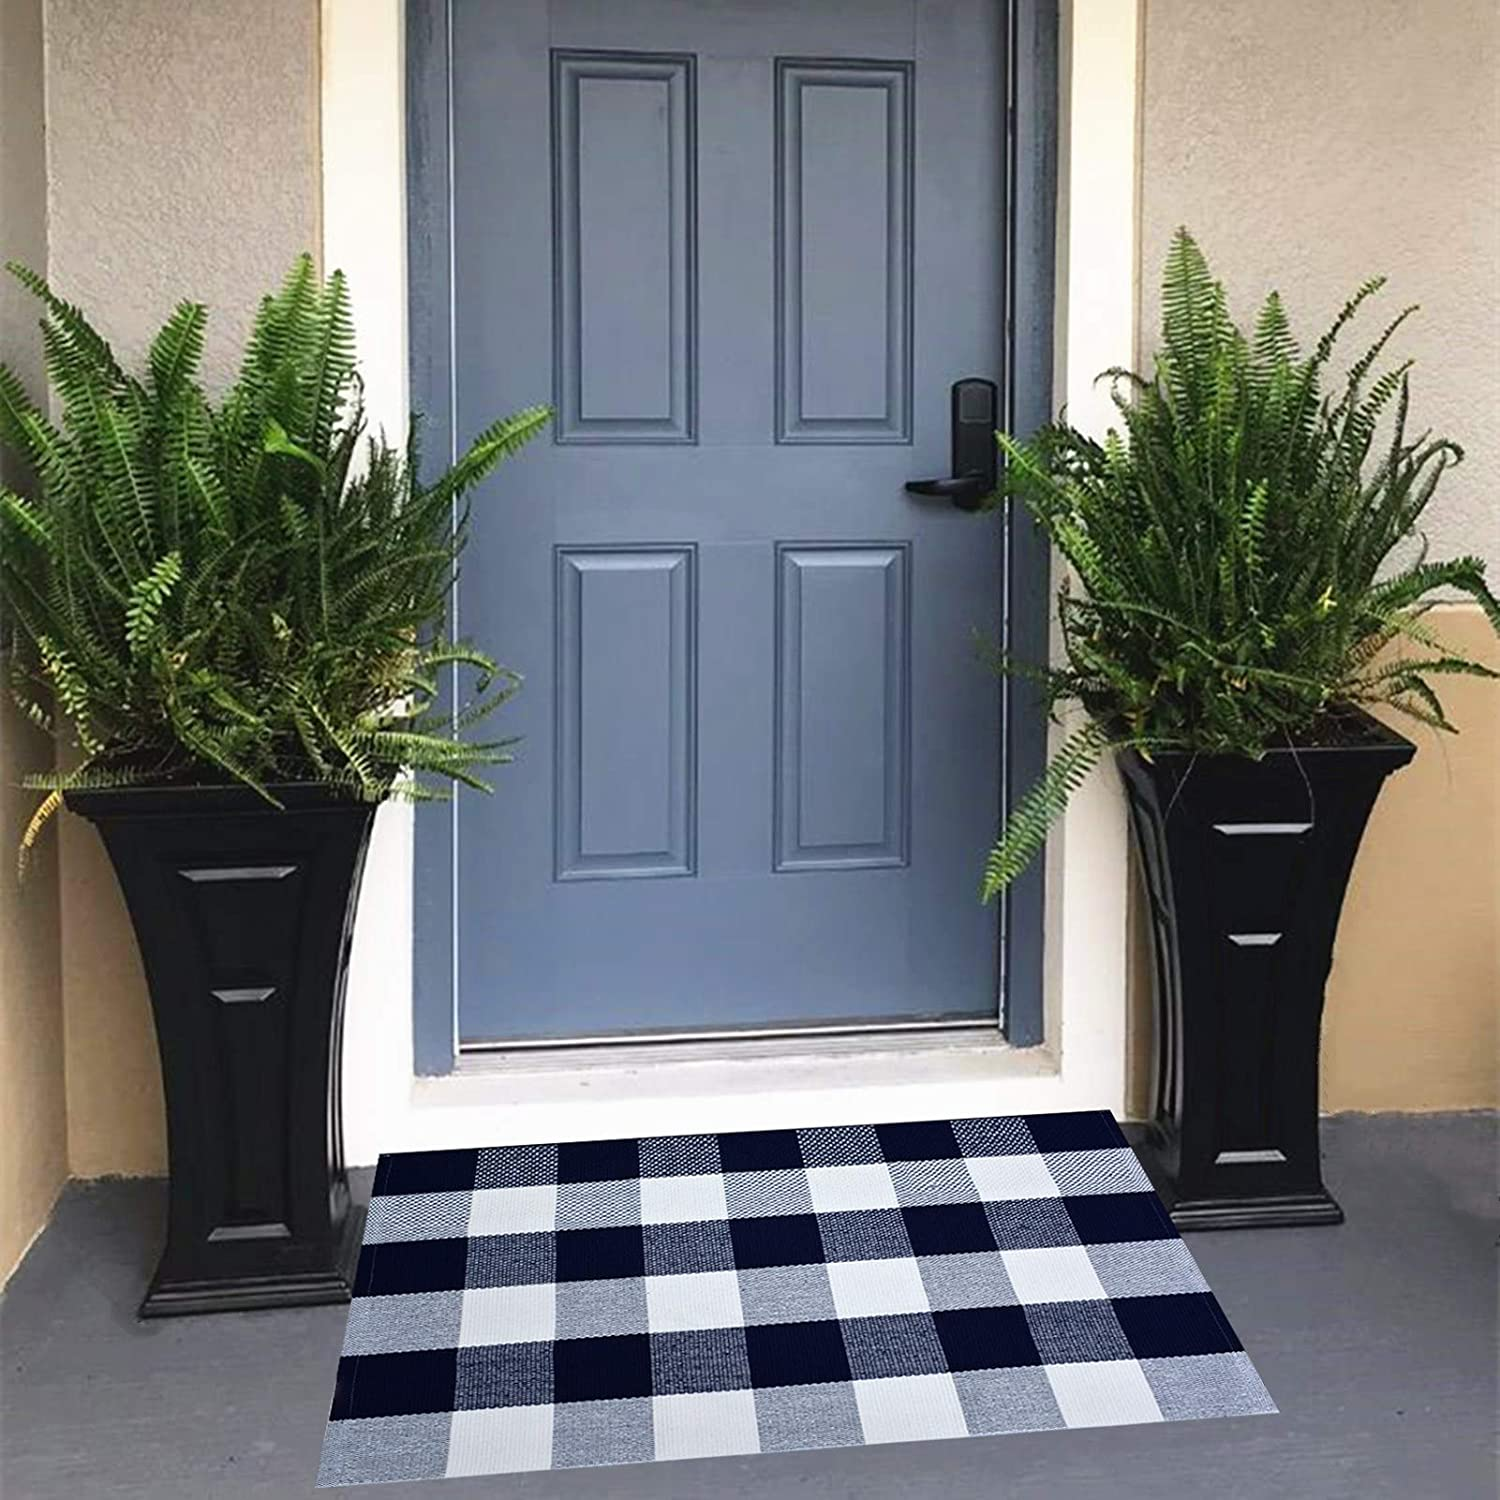 USTIDE Buffalo Plaid Check Rug Navy Blue and White Cotton Rugs 23.6